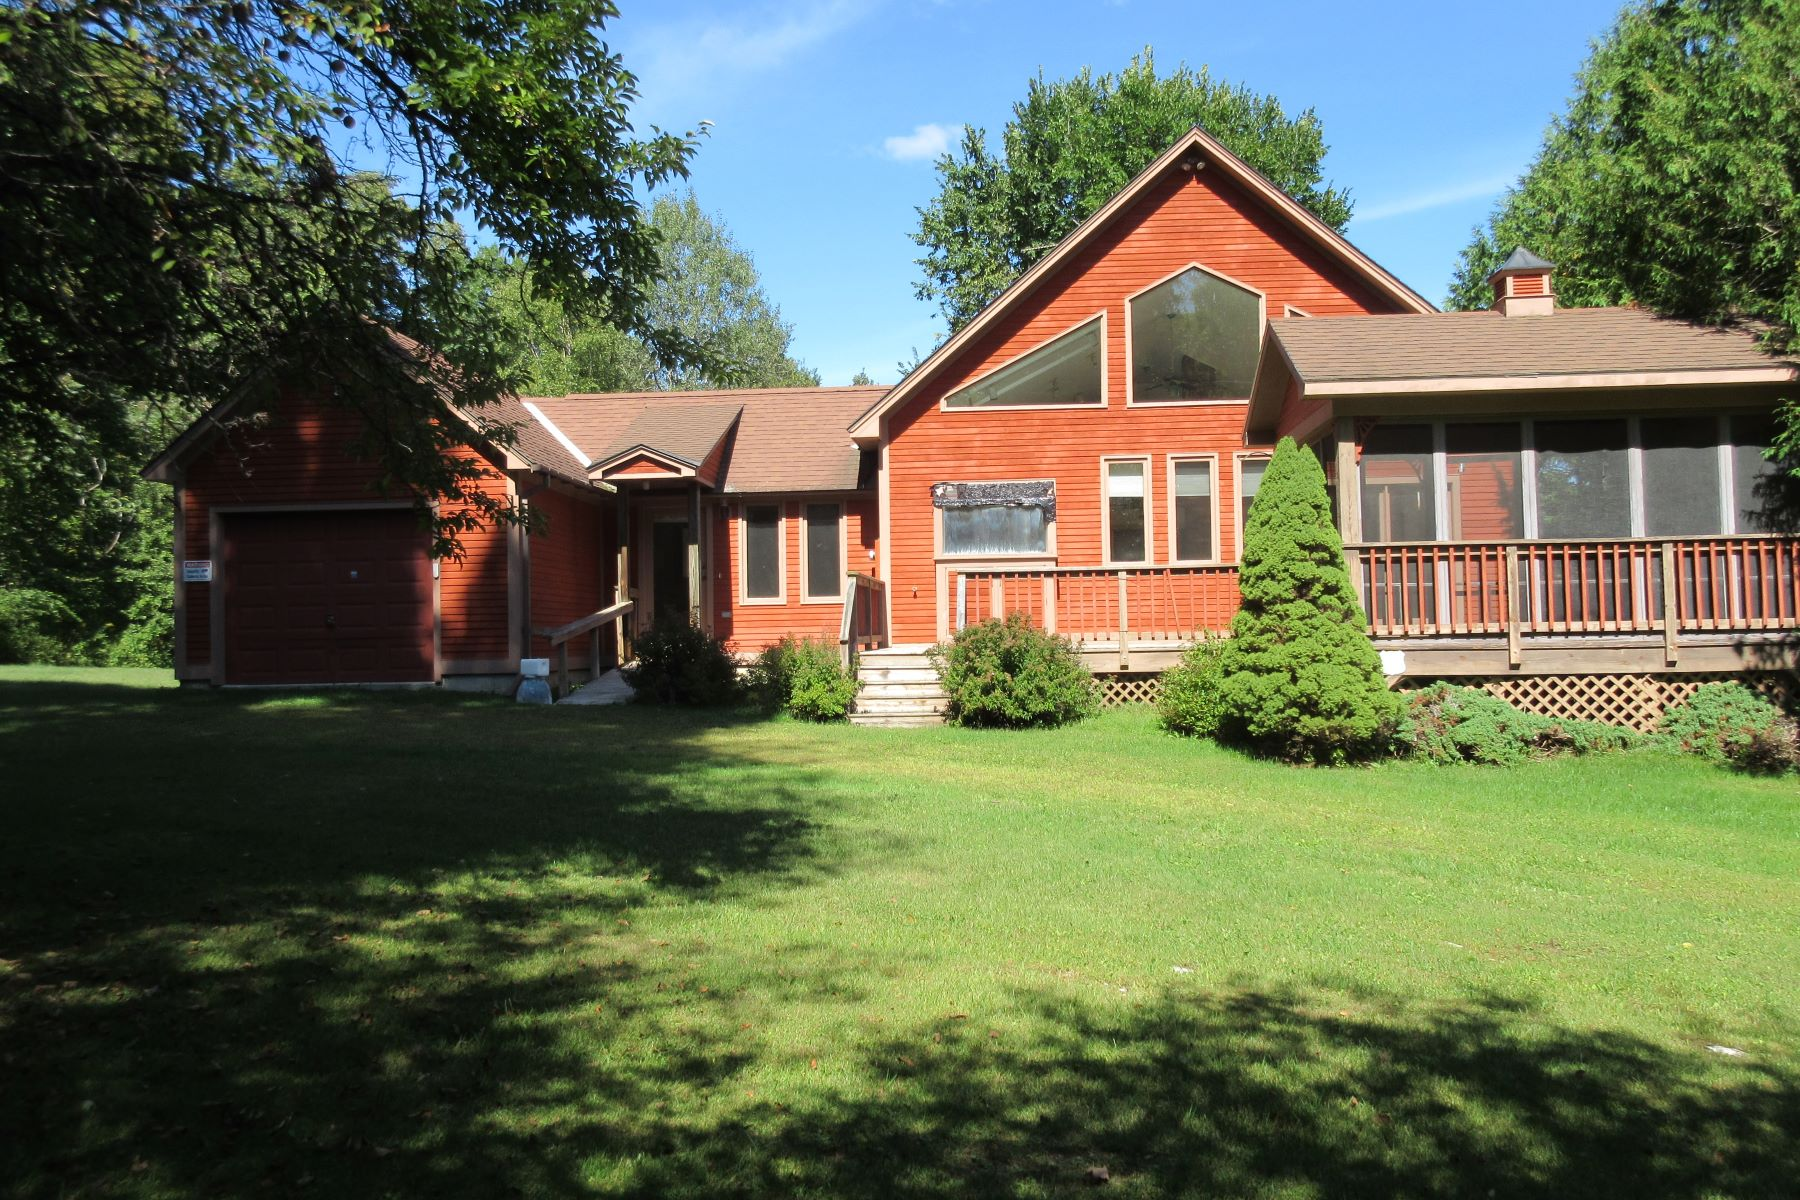 Single Family Homes for Sale at Artist's Contemporary home 1778 Fire Hill Rd Pittsford, Vermont 05763 United States